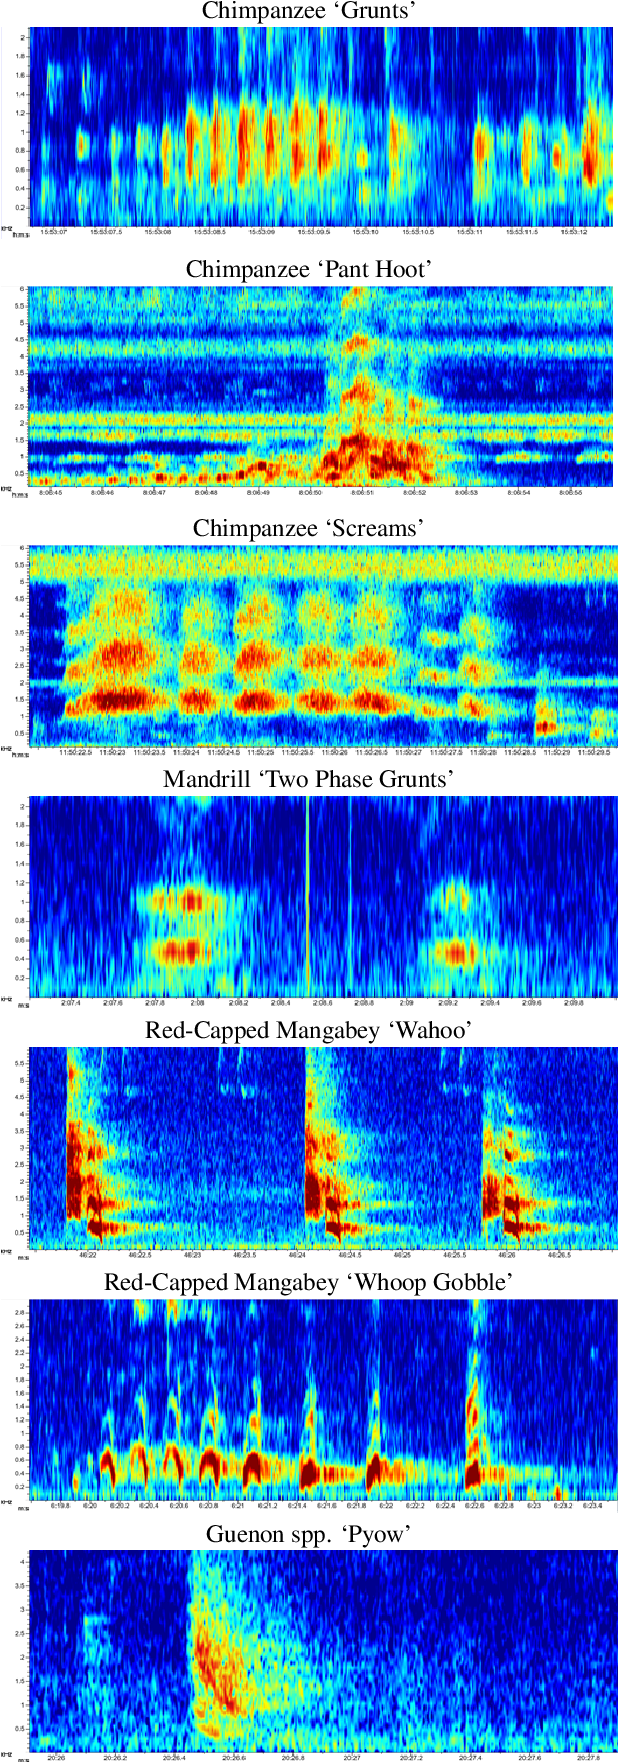 Figure 3 for Introducing a Central African Primate Vocalisation Dataset for Automated Species Classification